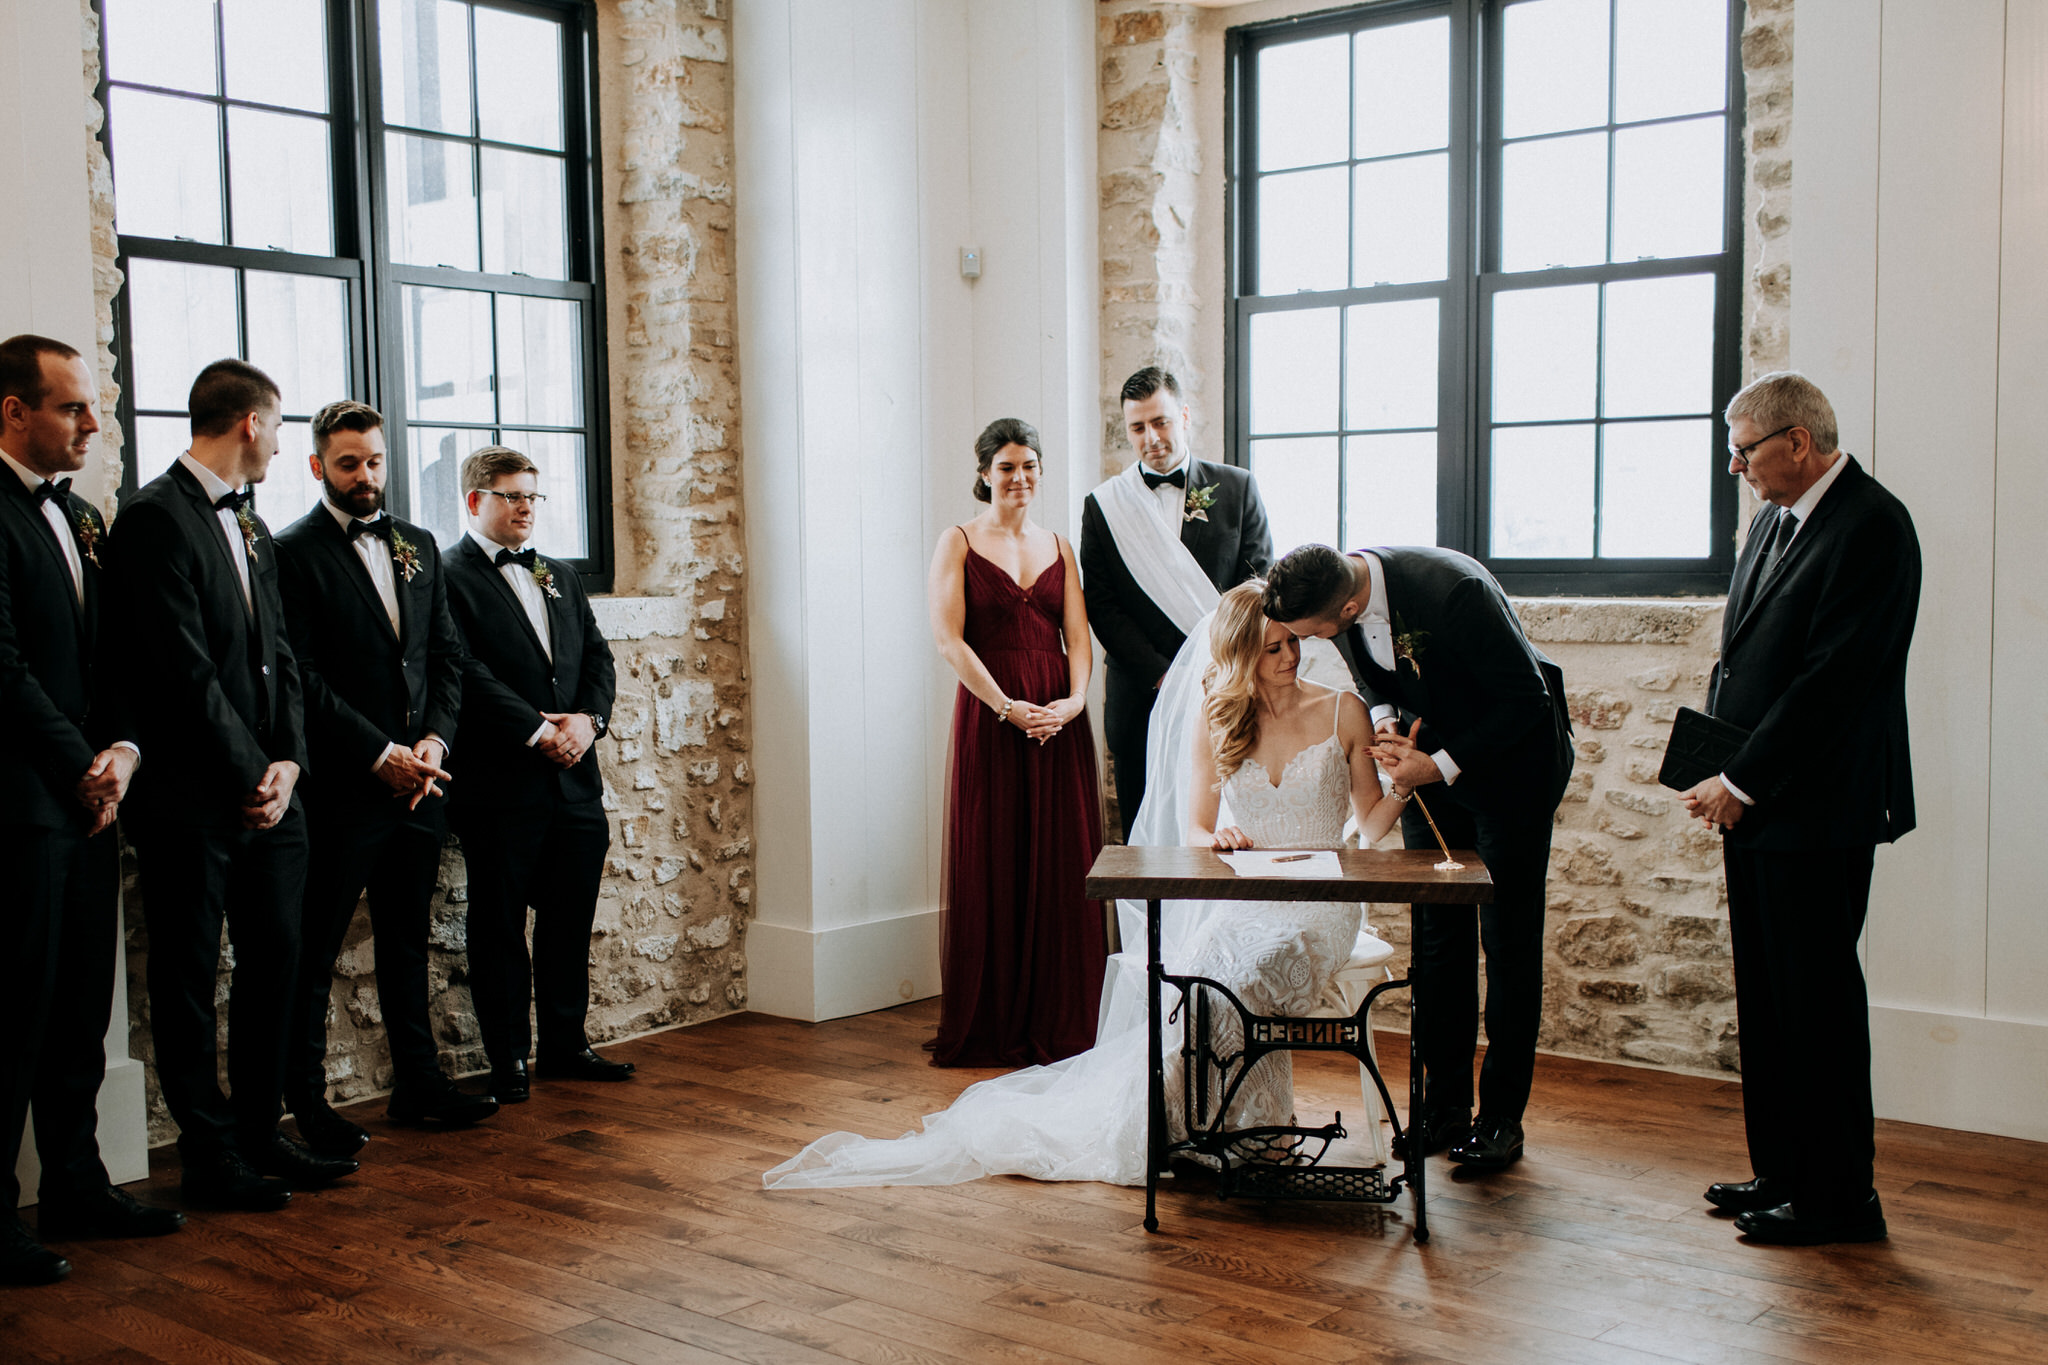 The Foundry Ceremony, Elora Mill Wedding, Elora Mill Hotel and Spa, Winter wedding in Elora, Elora Gorge wedding, James Ross House, the